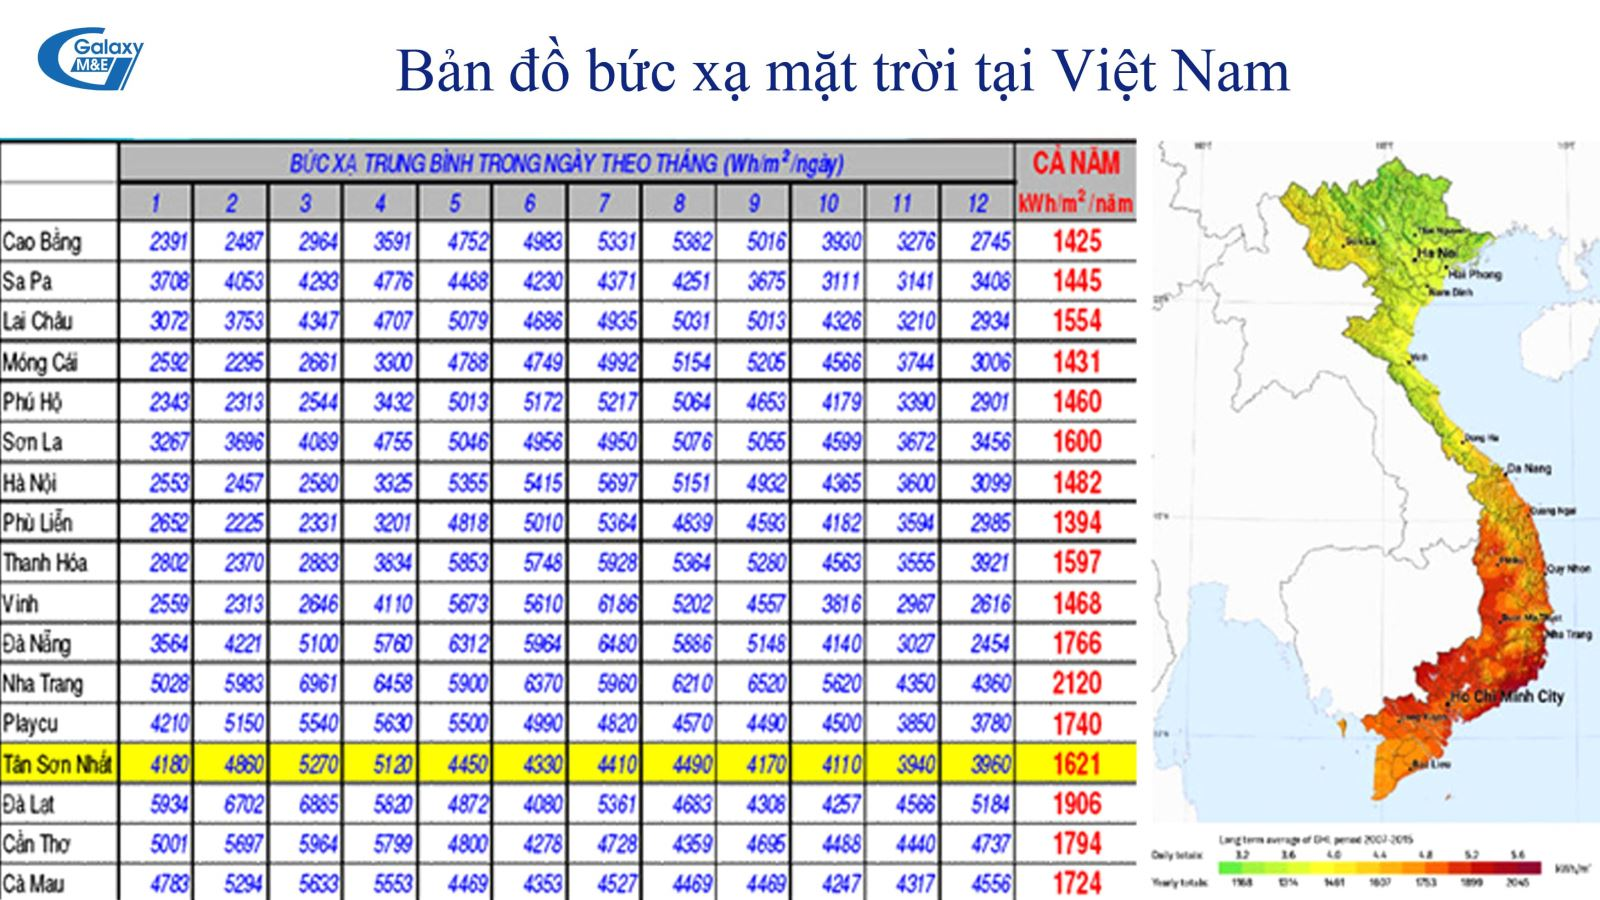 The amount of radiation in the North is 10% to 20% less than in the South and the centre of Vietnam.